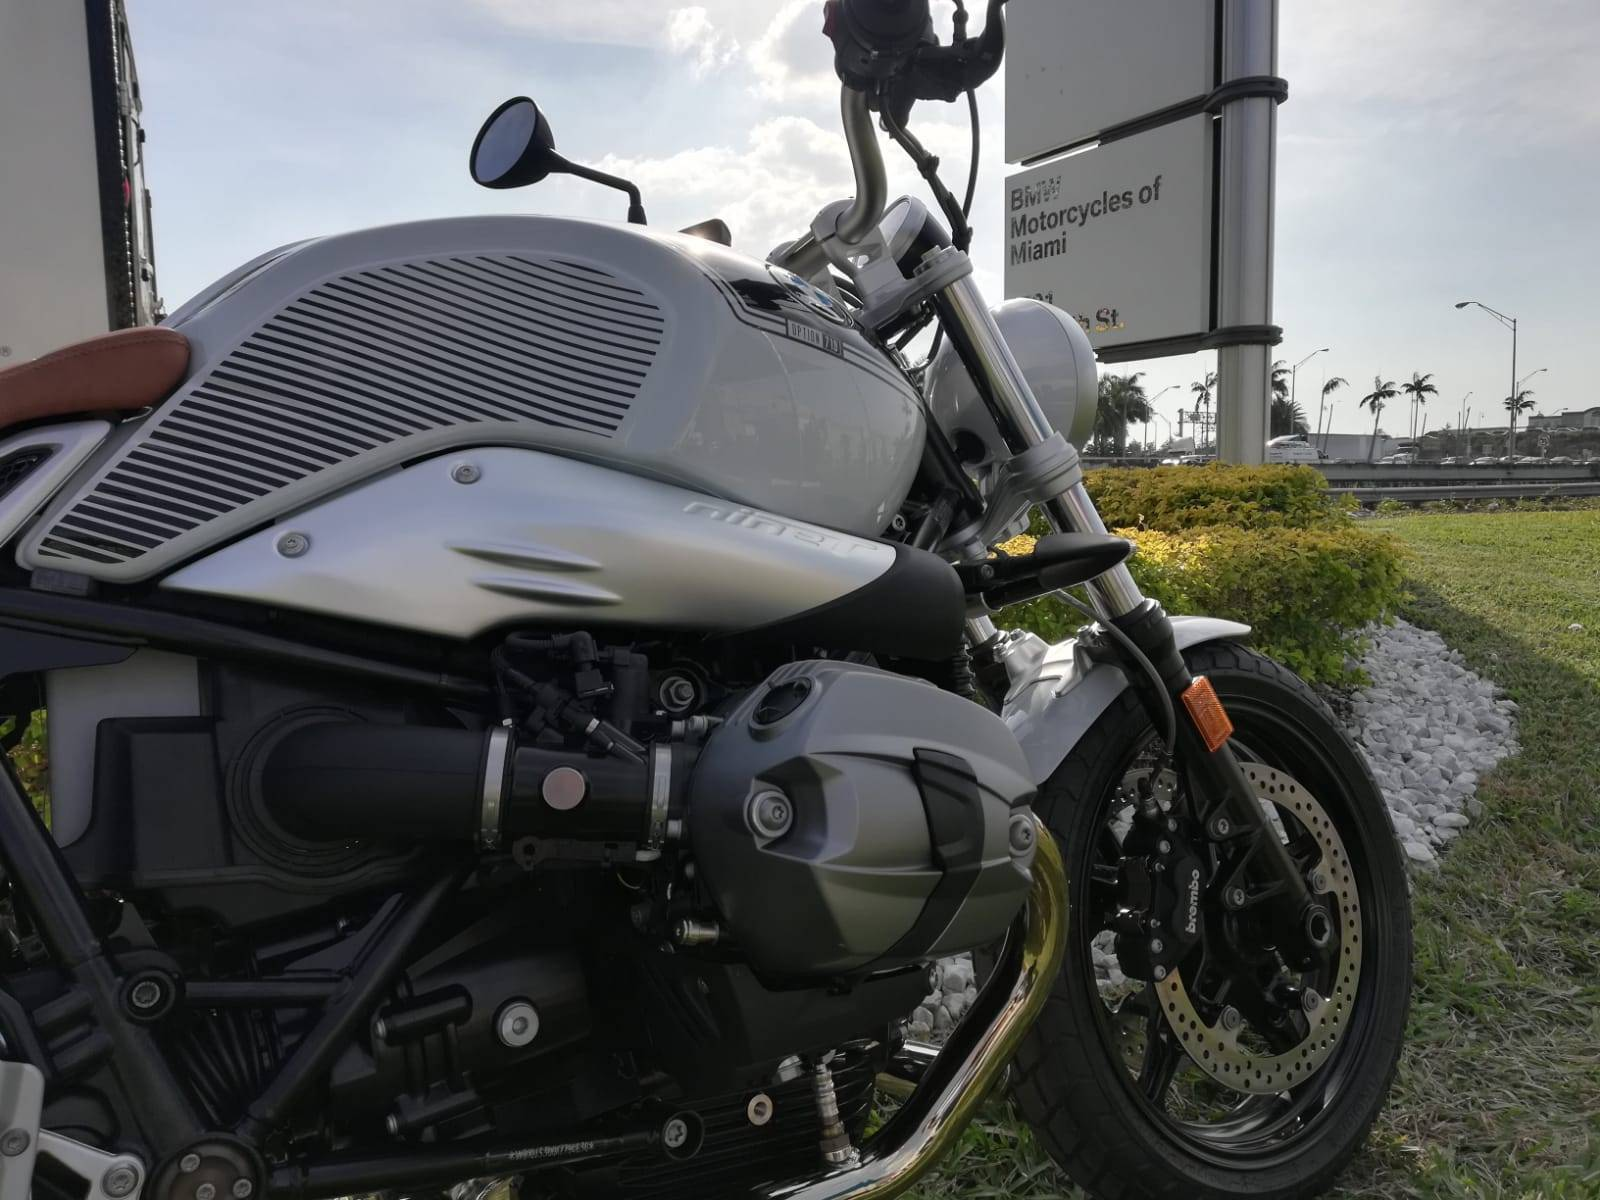 New 2019 BMW R nine T Scrambler for sale, BMW Scrambler for sale, BMW Motorcycle Scrambler, Scrambler, BMW Motorcycles of Miami, Motorcycles of Miami, Motorcycles Miami, New Motorcycles, Used Motorcycles, pre-owned. #BMWMotorcyclesOfMiami #MotorcyclesOfMiami. - Photo 20